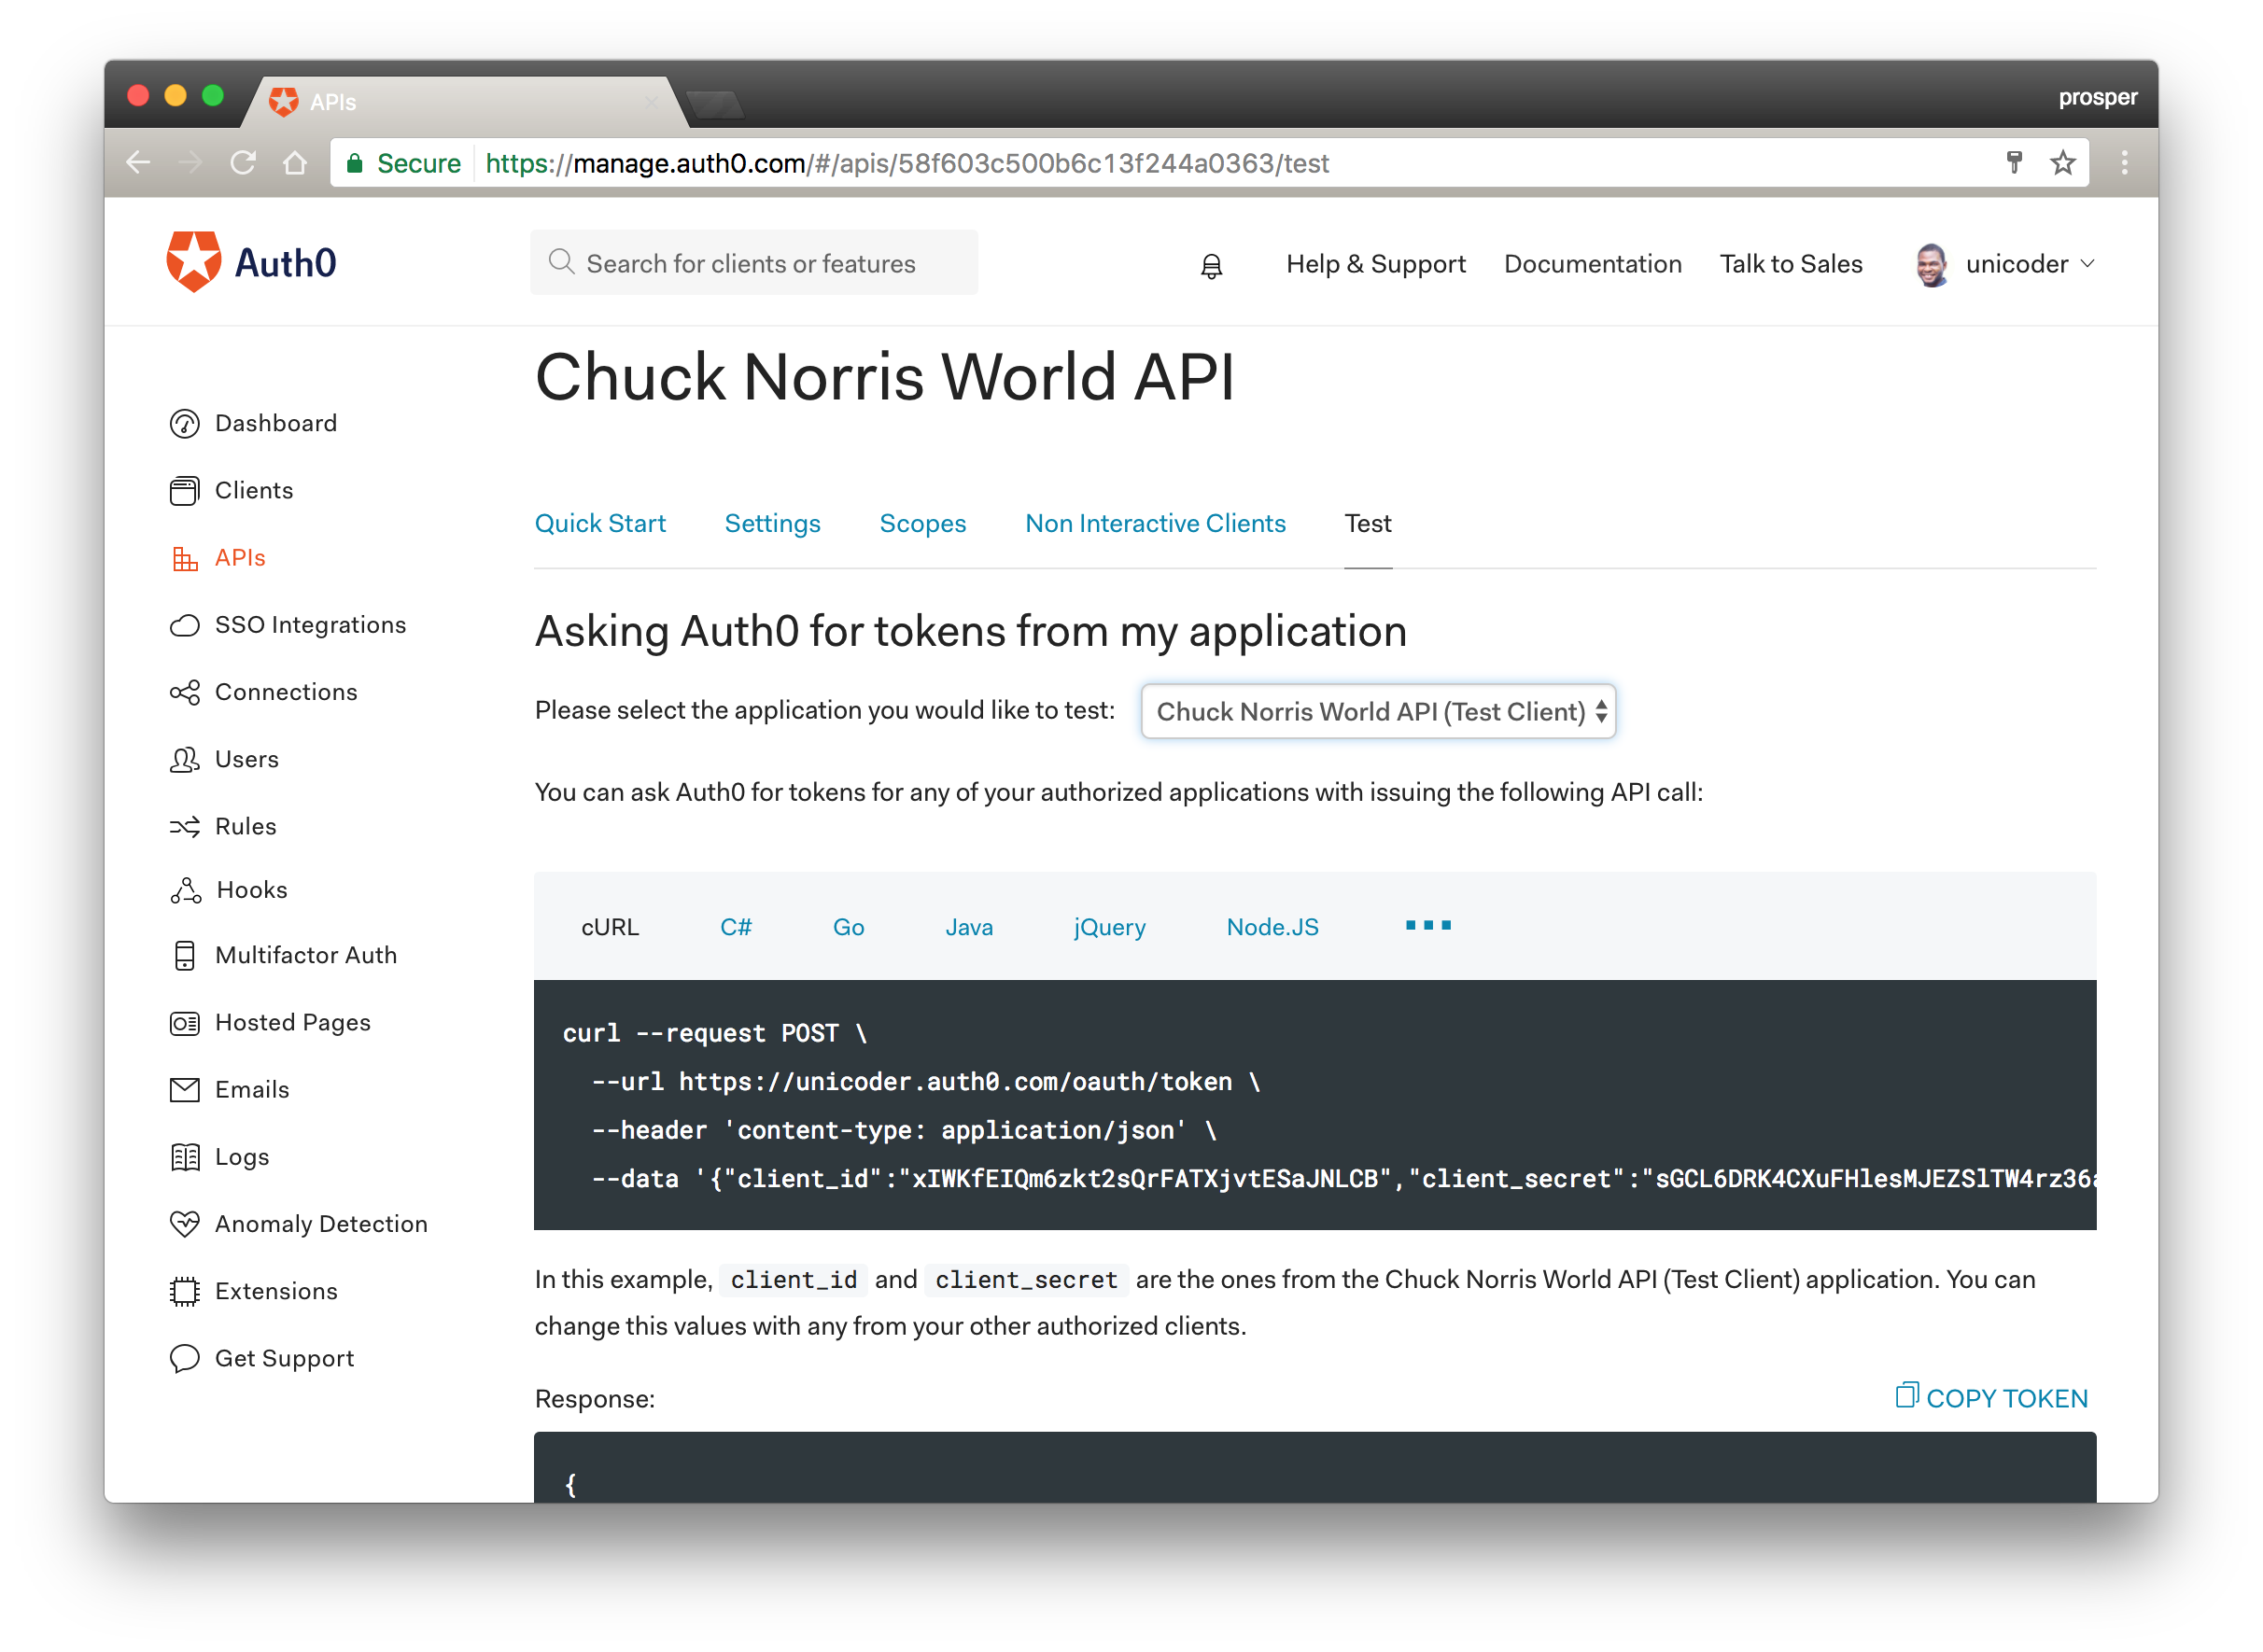 Chuck Norris World Client